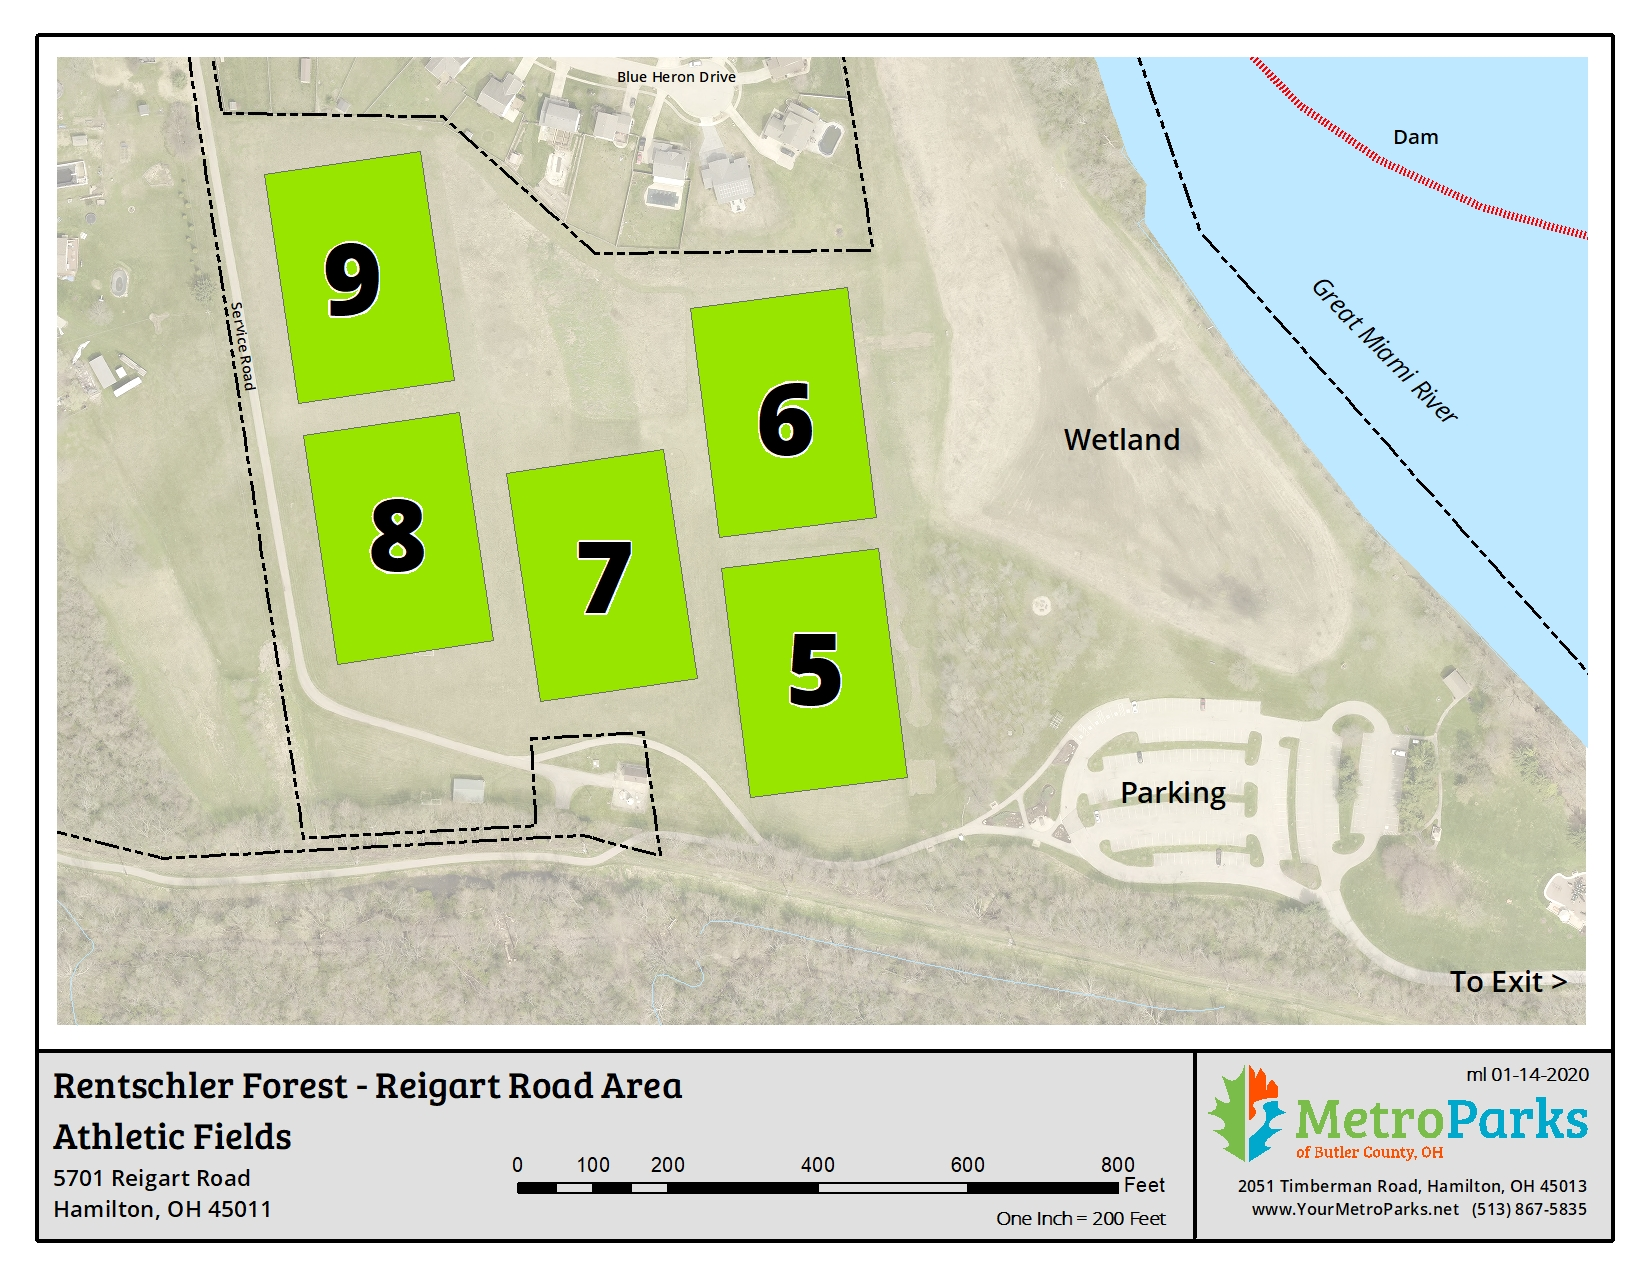 Rentschler Forest MetroPark Reigart Road Area Sports Fields Map